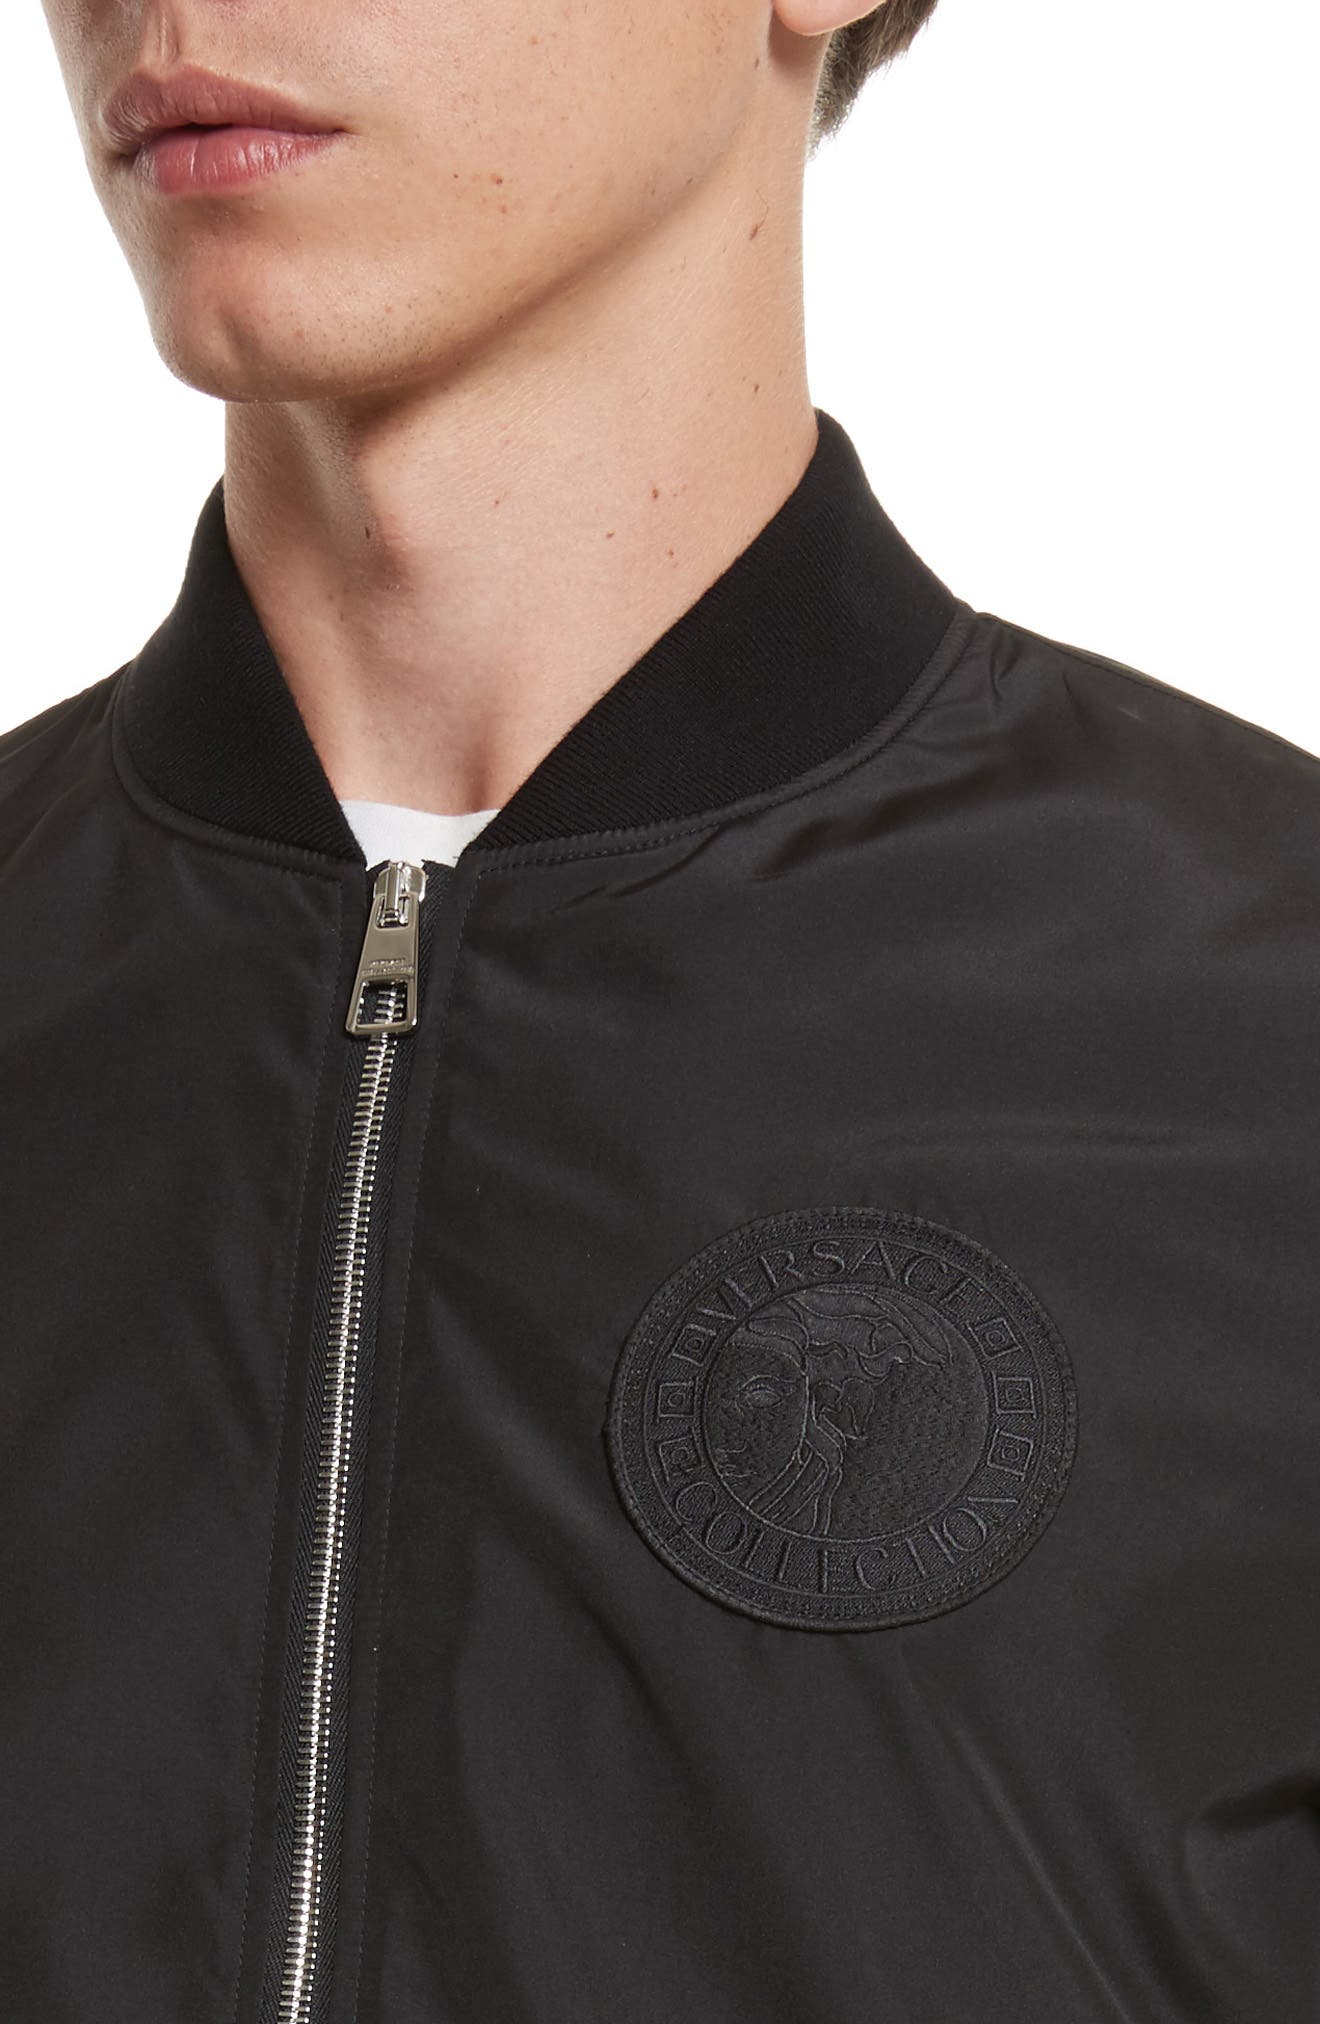 Bomber Jacket with Patch,                             Alternate thumbnail 4, color,                             Black